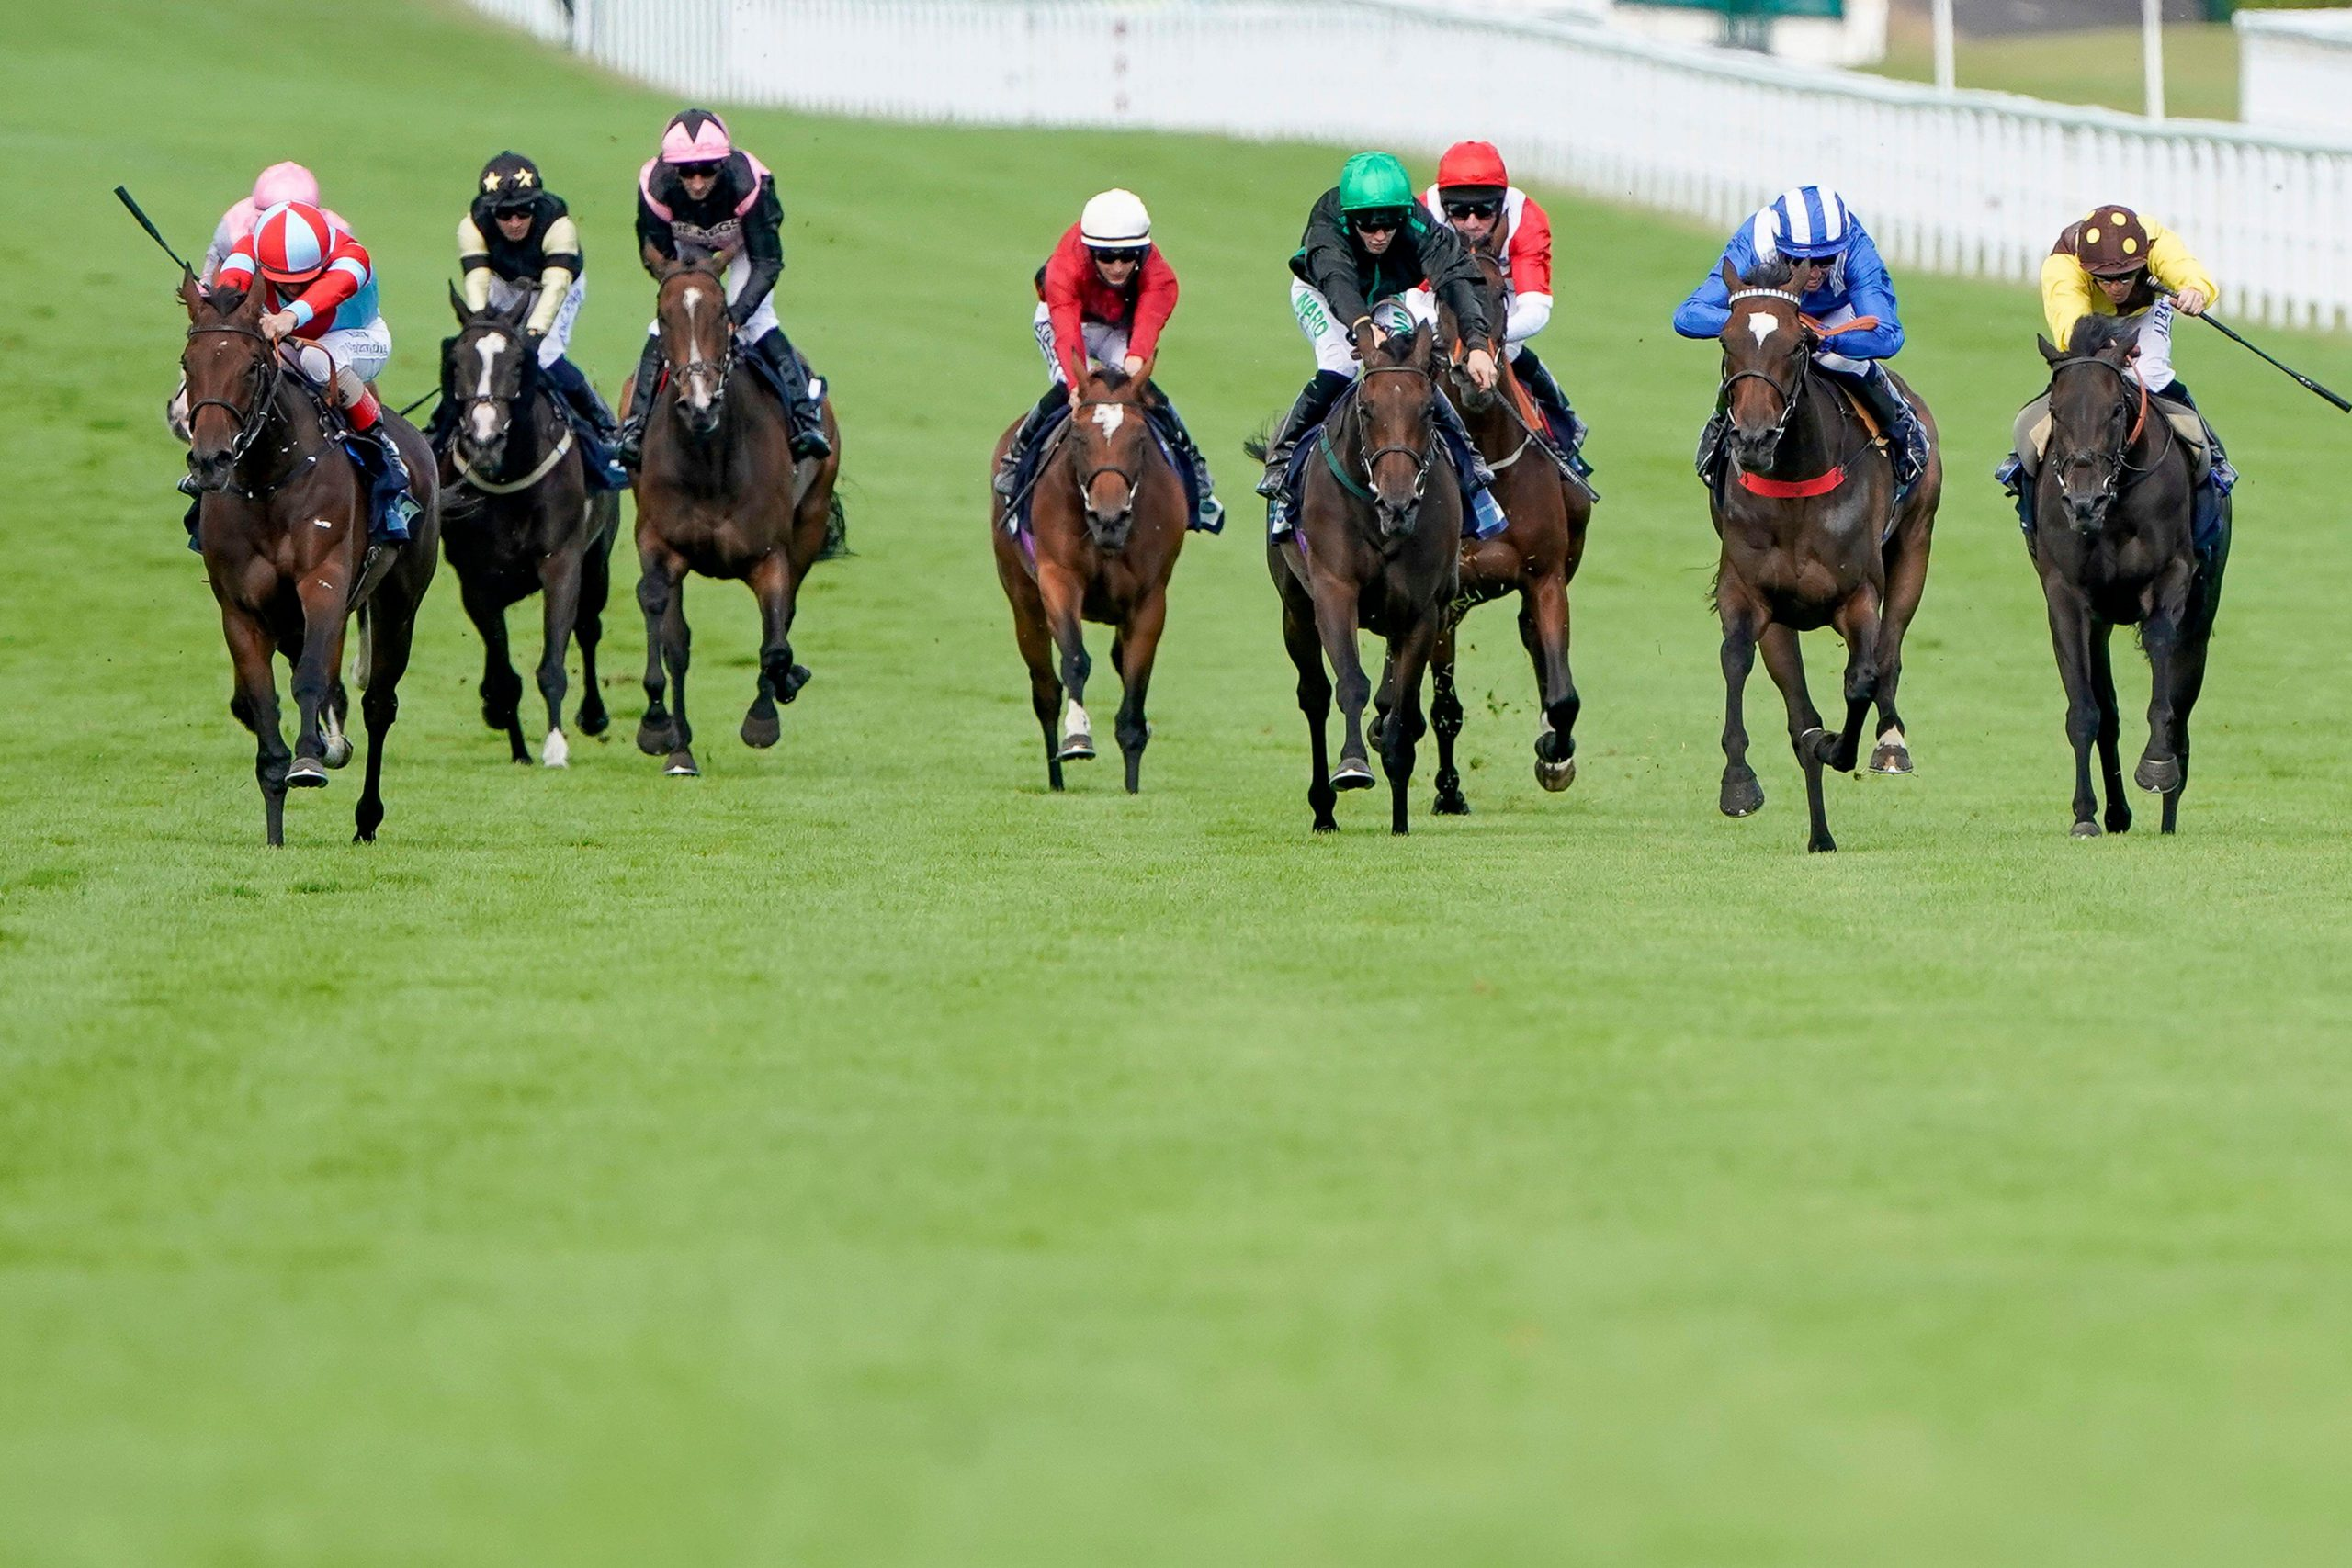 2C930JX Believe In Love ridden by Andrea Atzeni (left) goes on to win The British European Breeders Fund EBF FilliesO Handicap during day one of the Goodwood Festival at Goodwood Racecourse, Chichester.